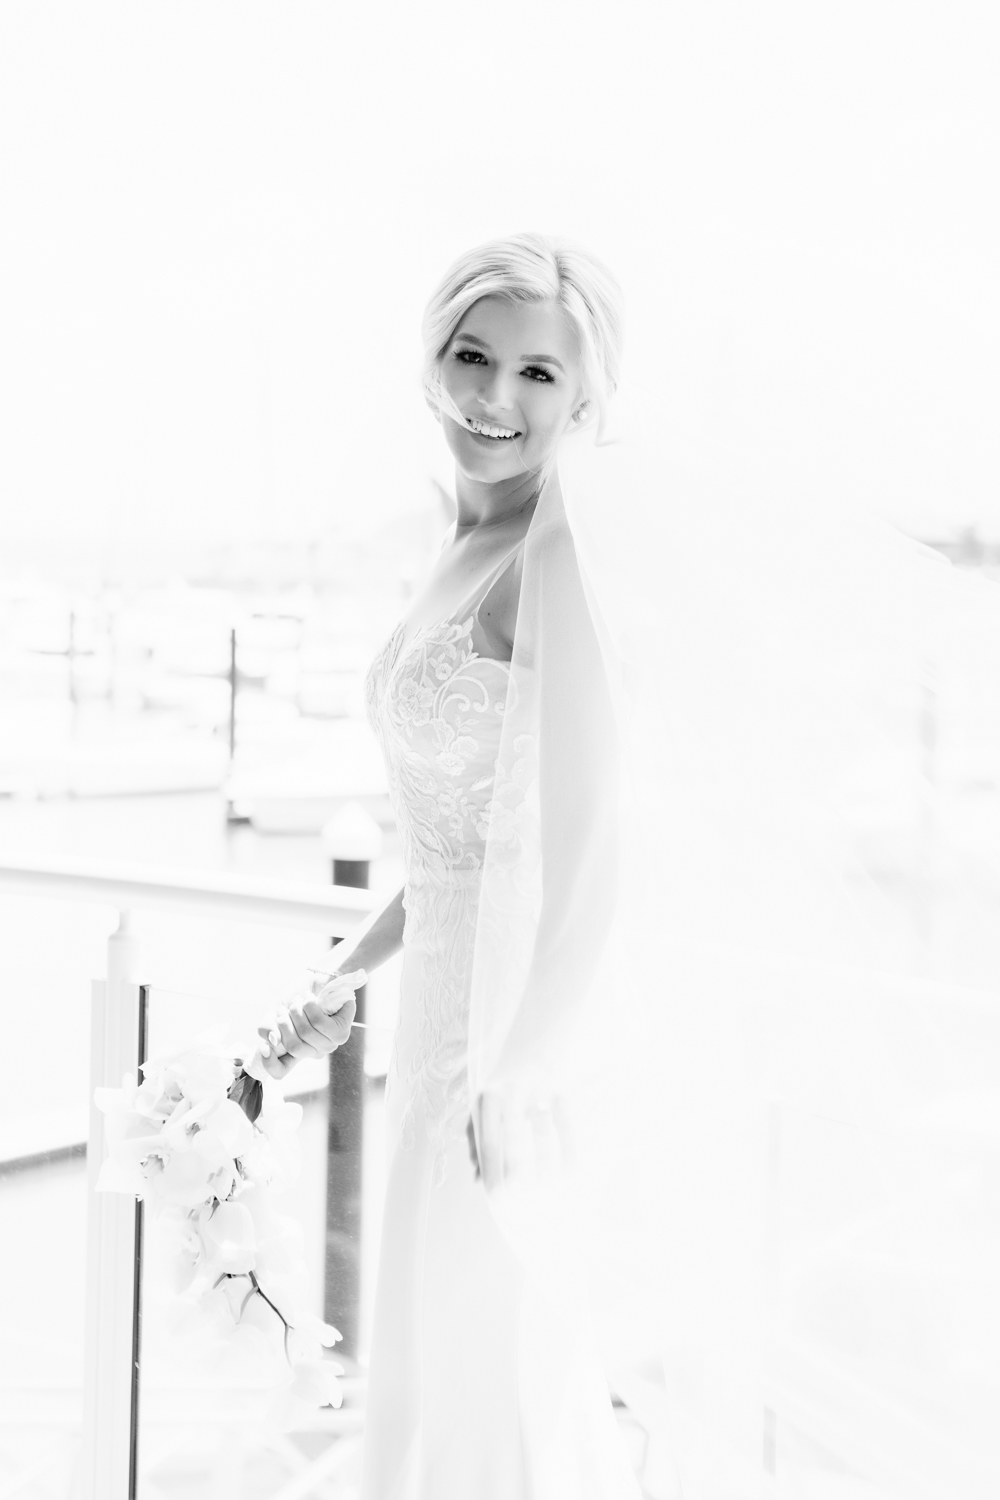 wedding-0118-bride-veil-wind-beautiful-brisbane.jpg